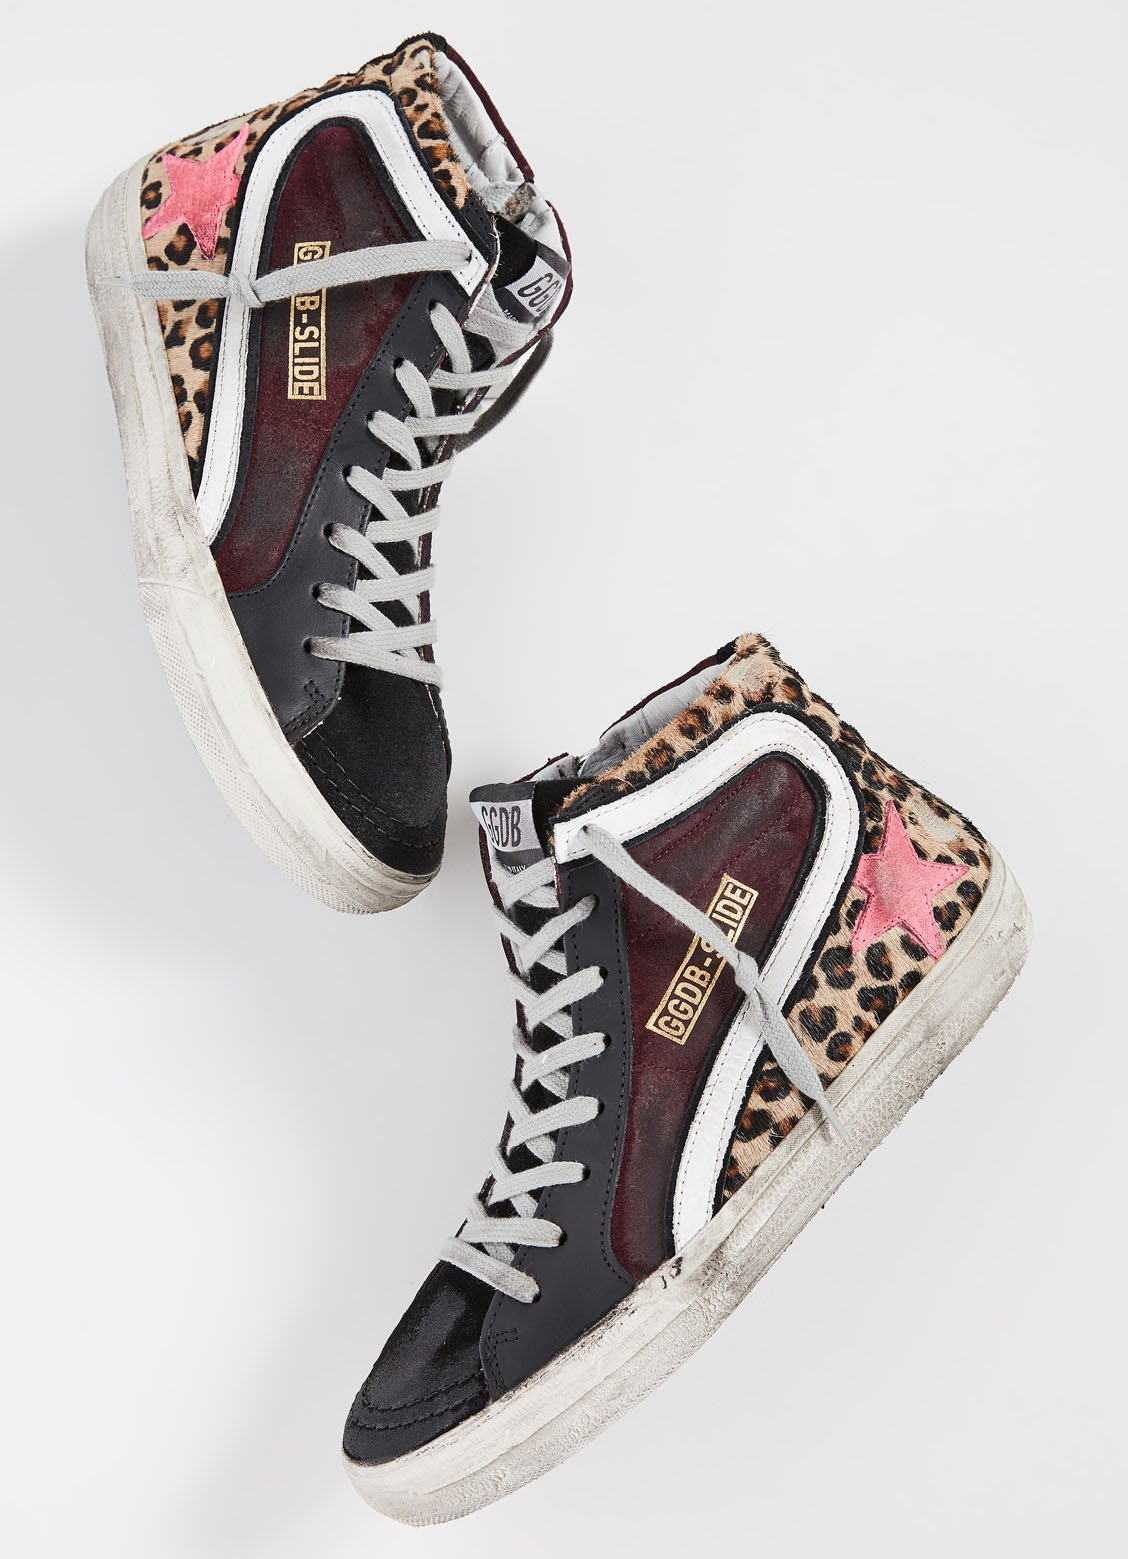 These Golden Goose high-tops are crafted from haircalf, suede and leather materials